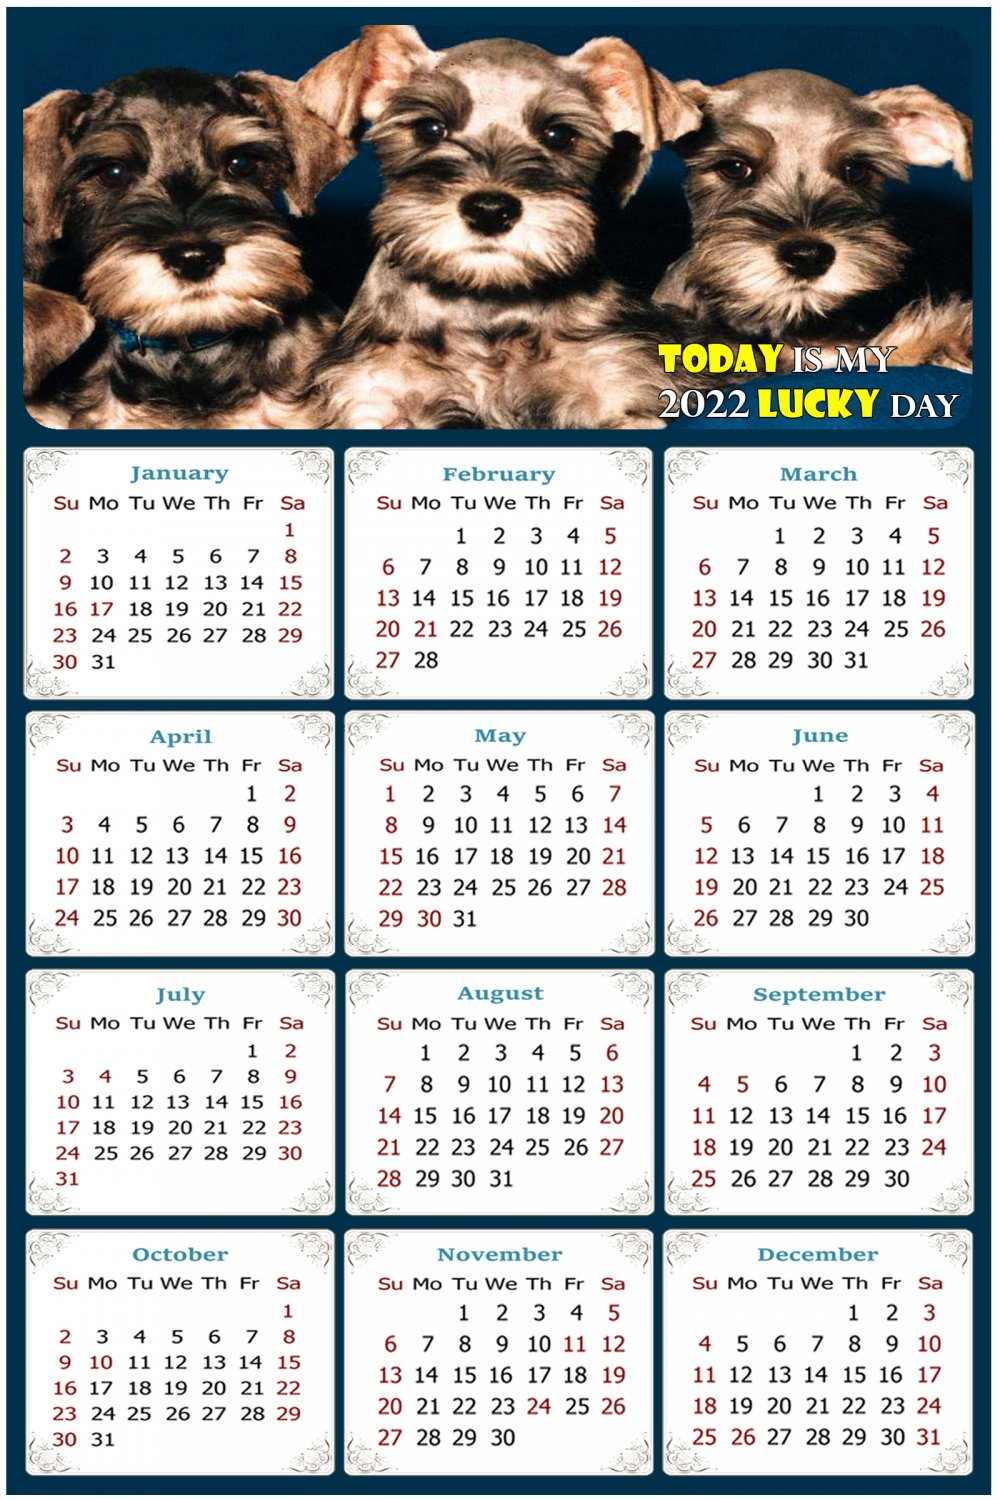 2022 Magnetic Calendar - Calendar Magnets - Today is My Lucky Day - Dogs Themed 08 (7 x 10.5)